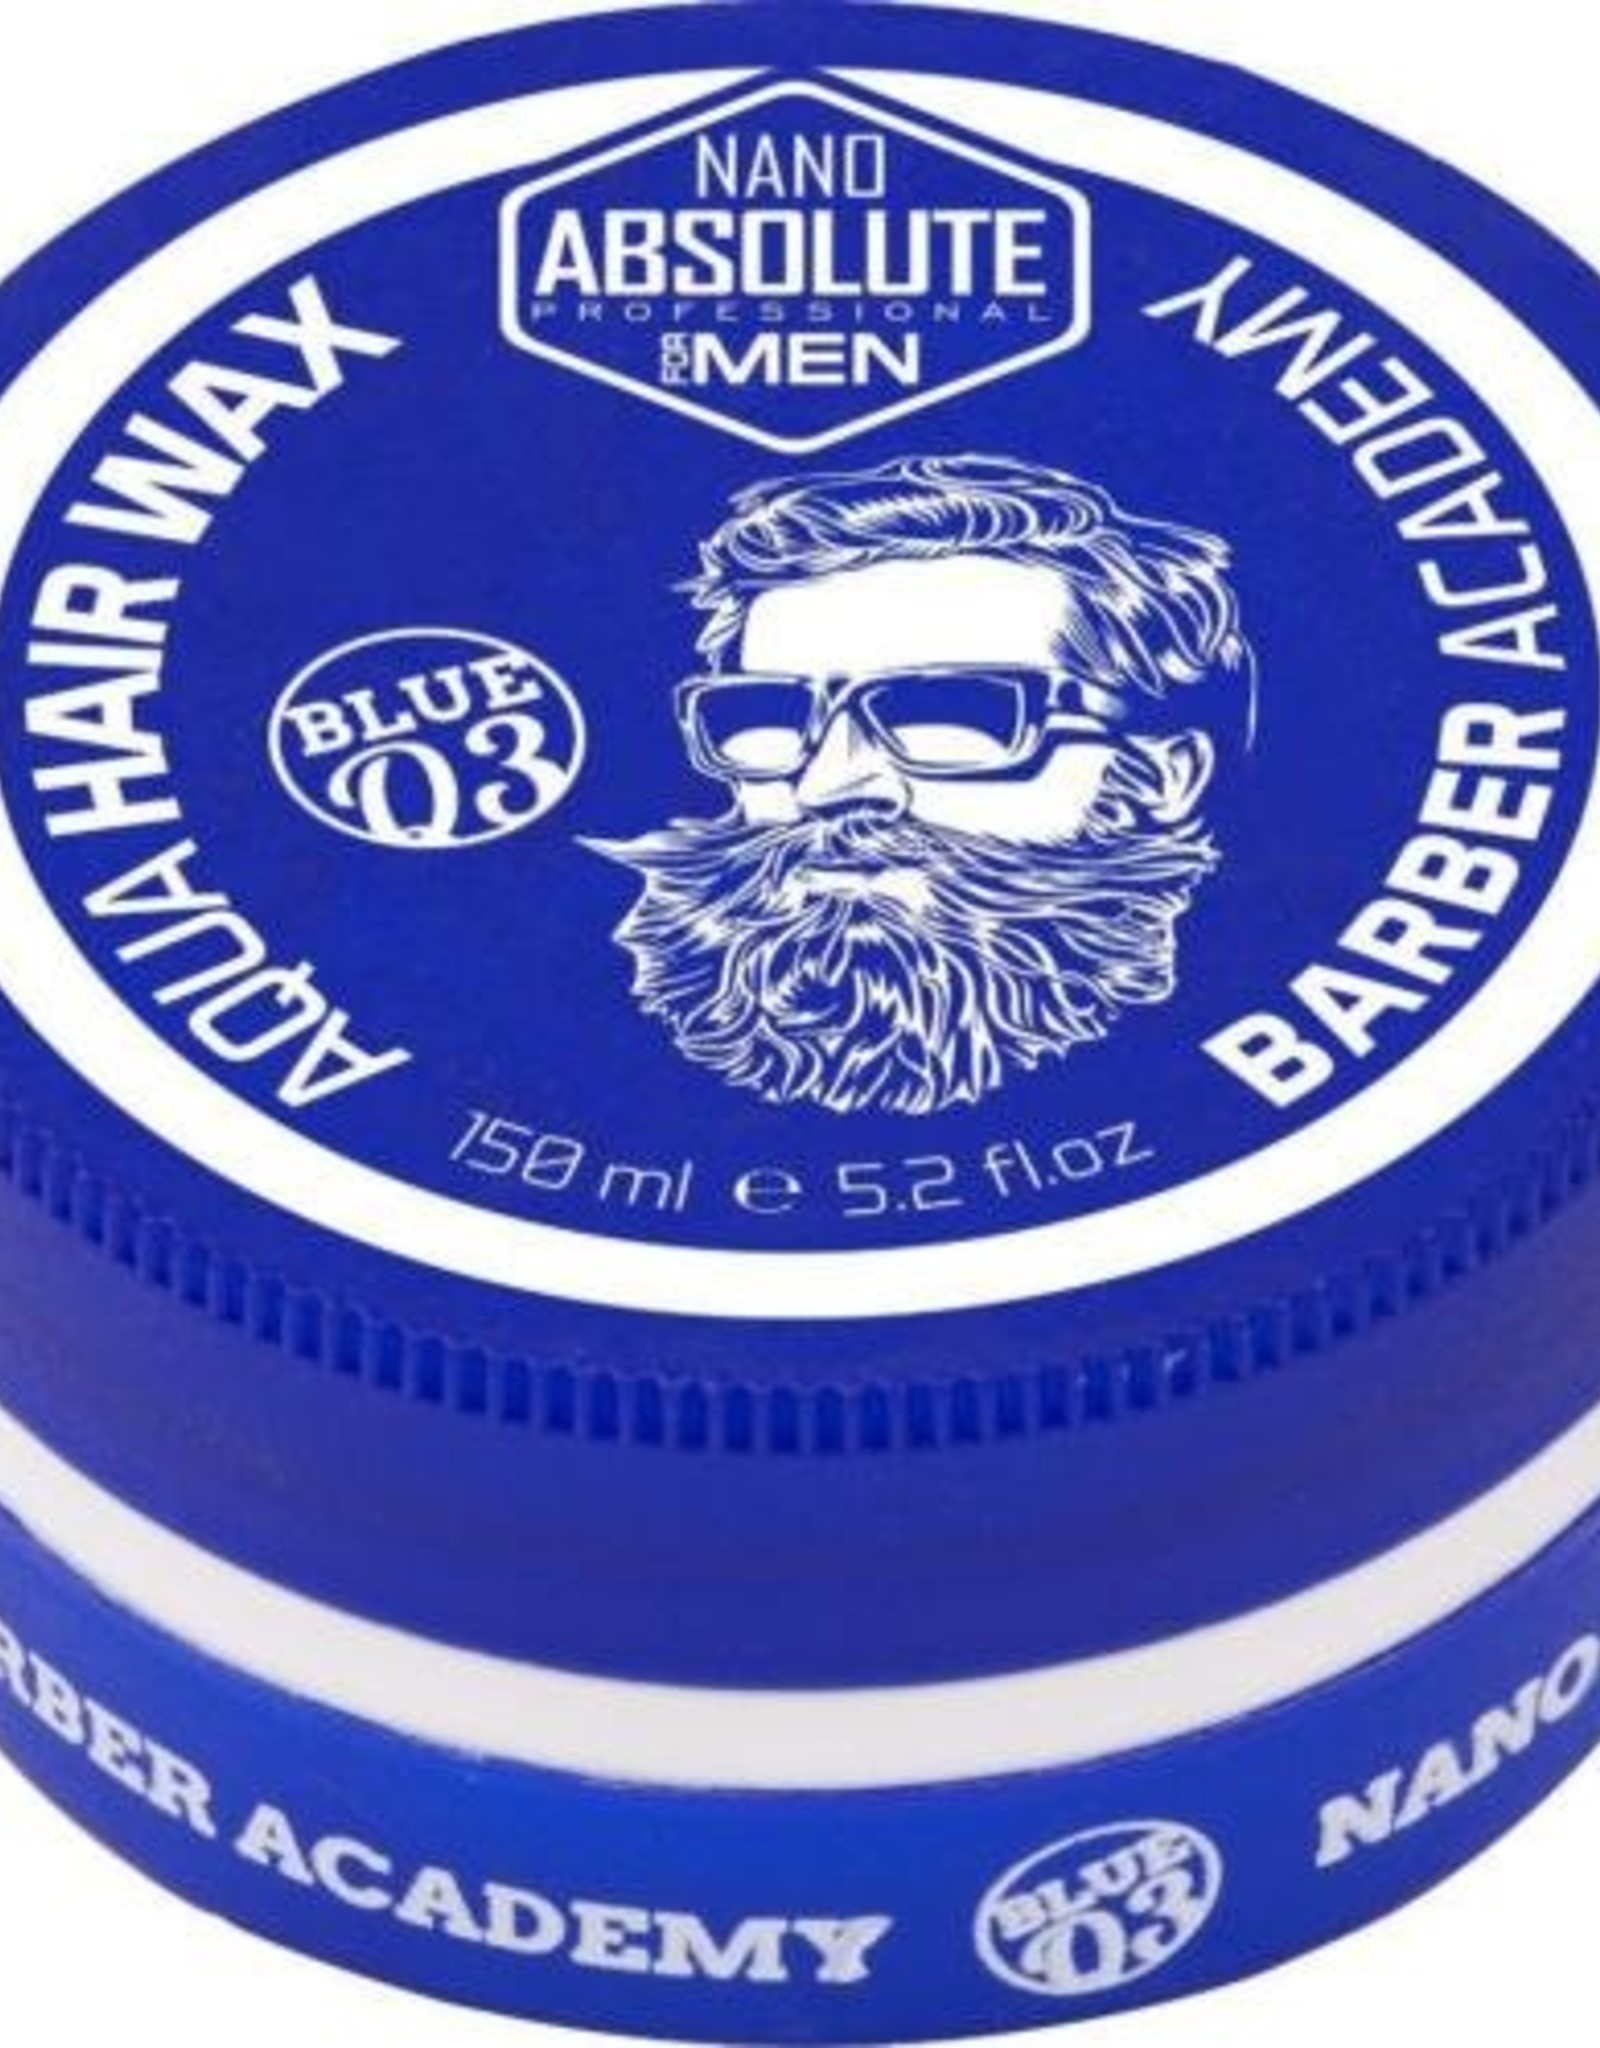 Nano Absolute Barber Academy Blauw